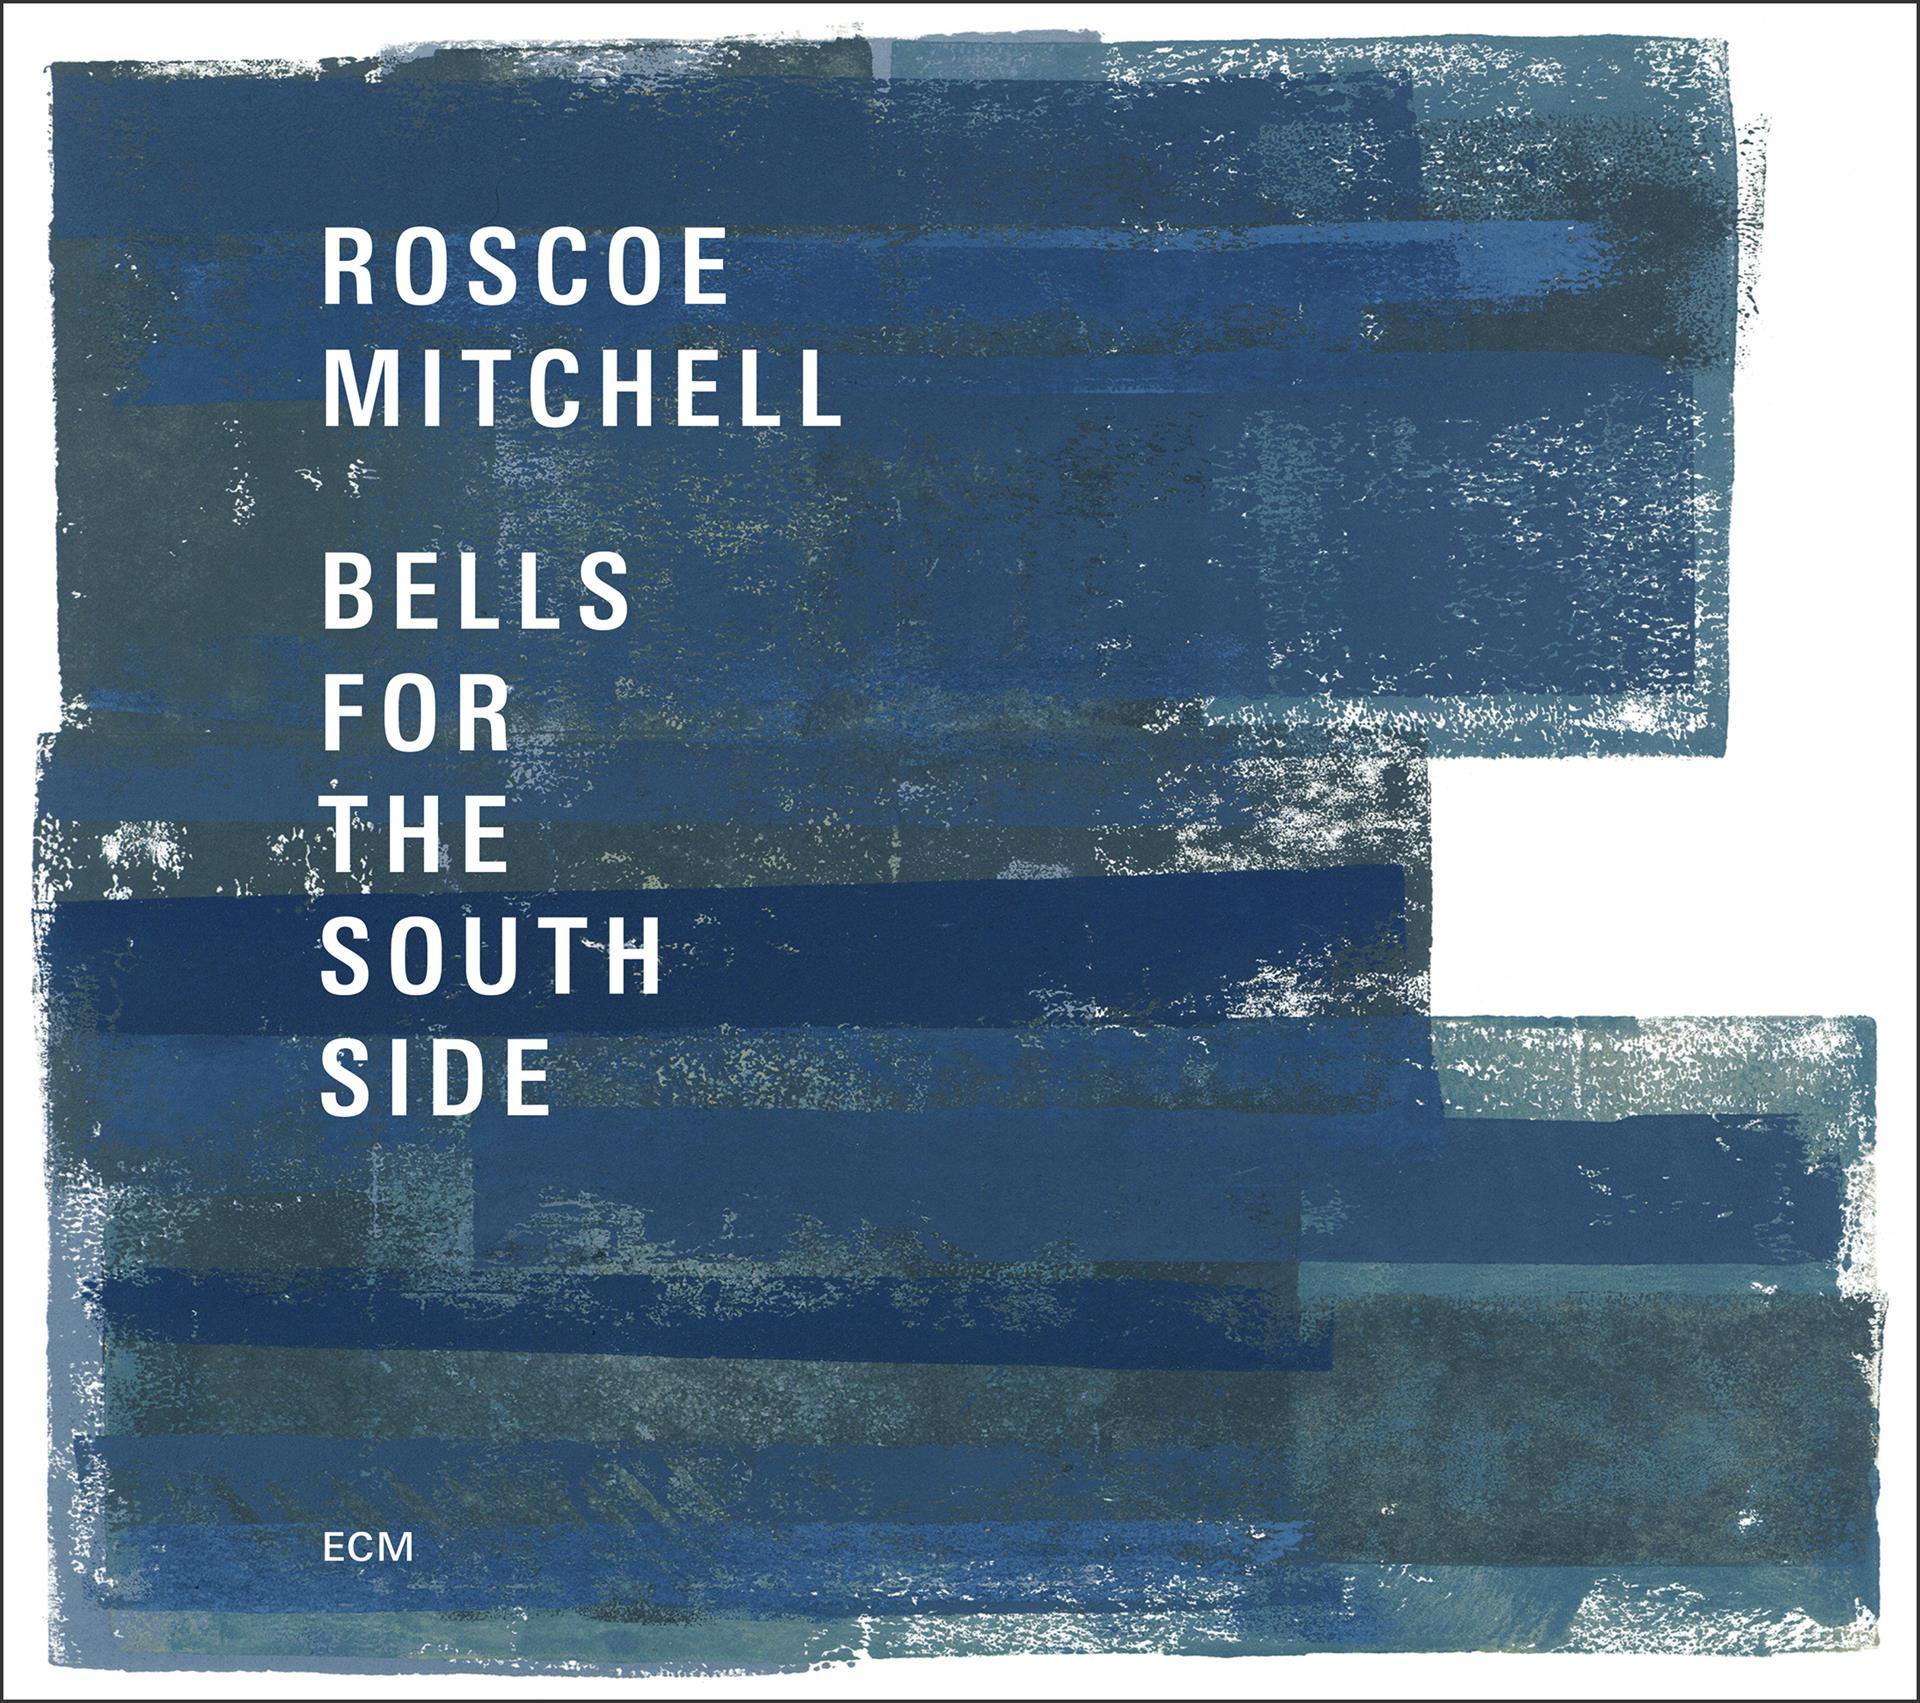 Roscoe Mitchell, Bells for the Southside, ECM - i migliori dischi jazz del 2017